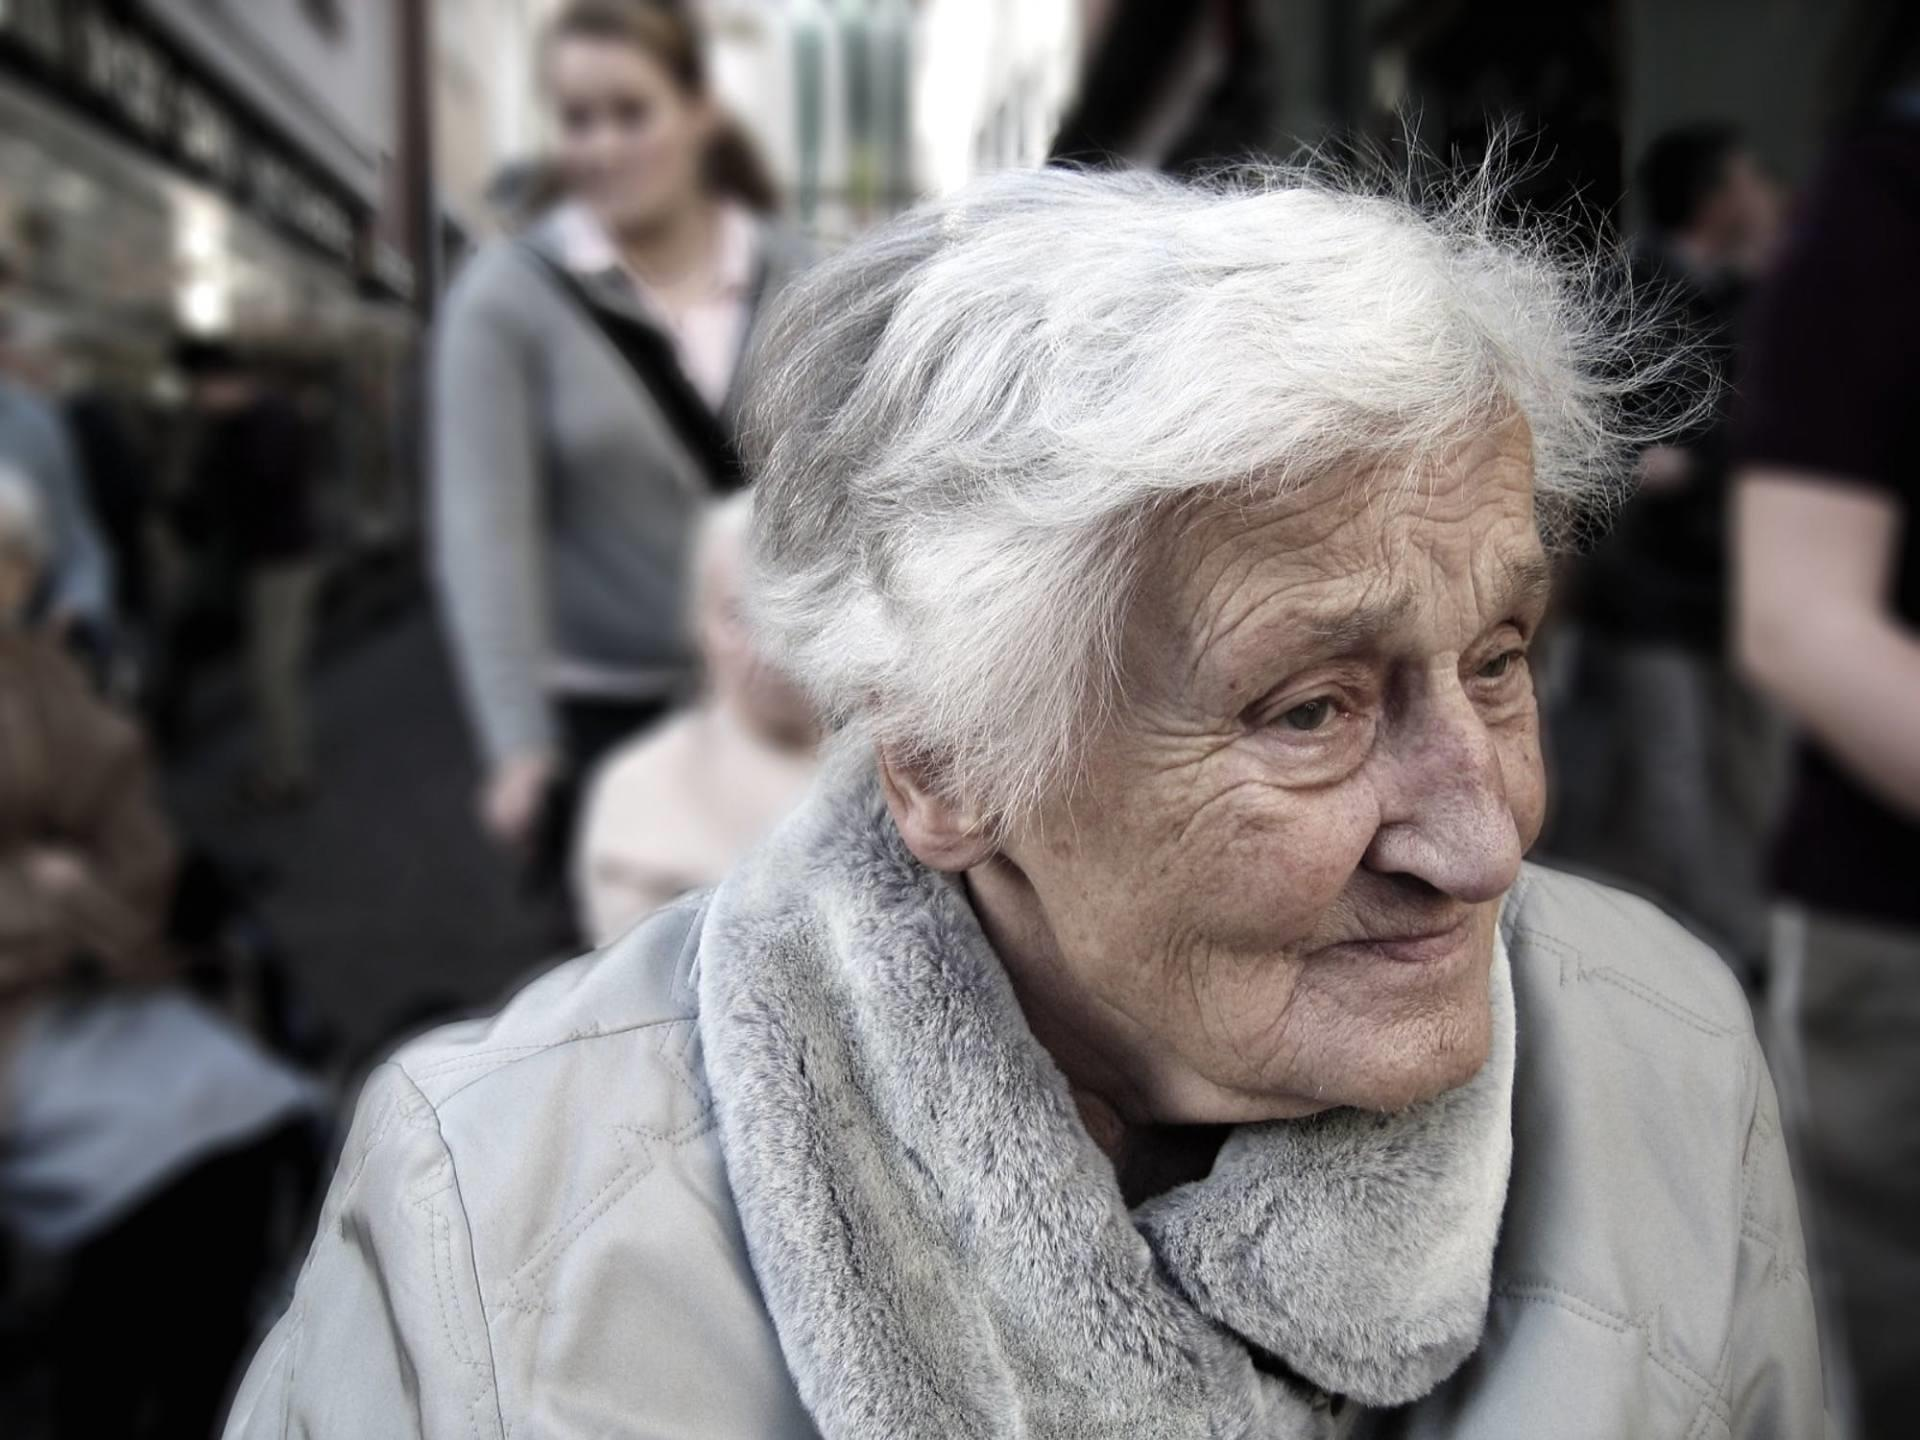 Dementia and the elderly